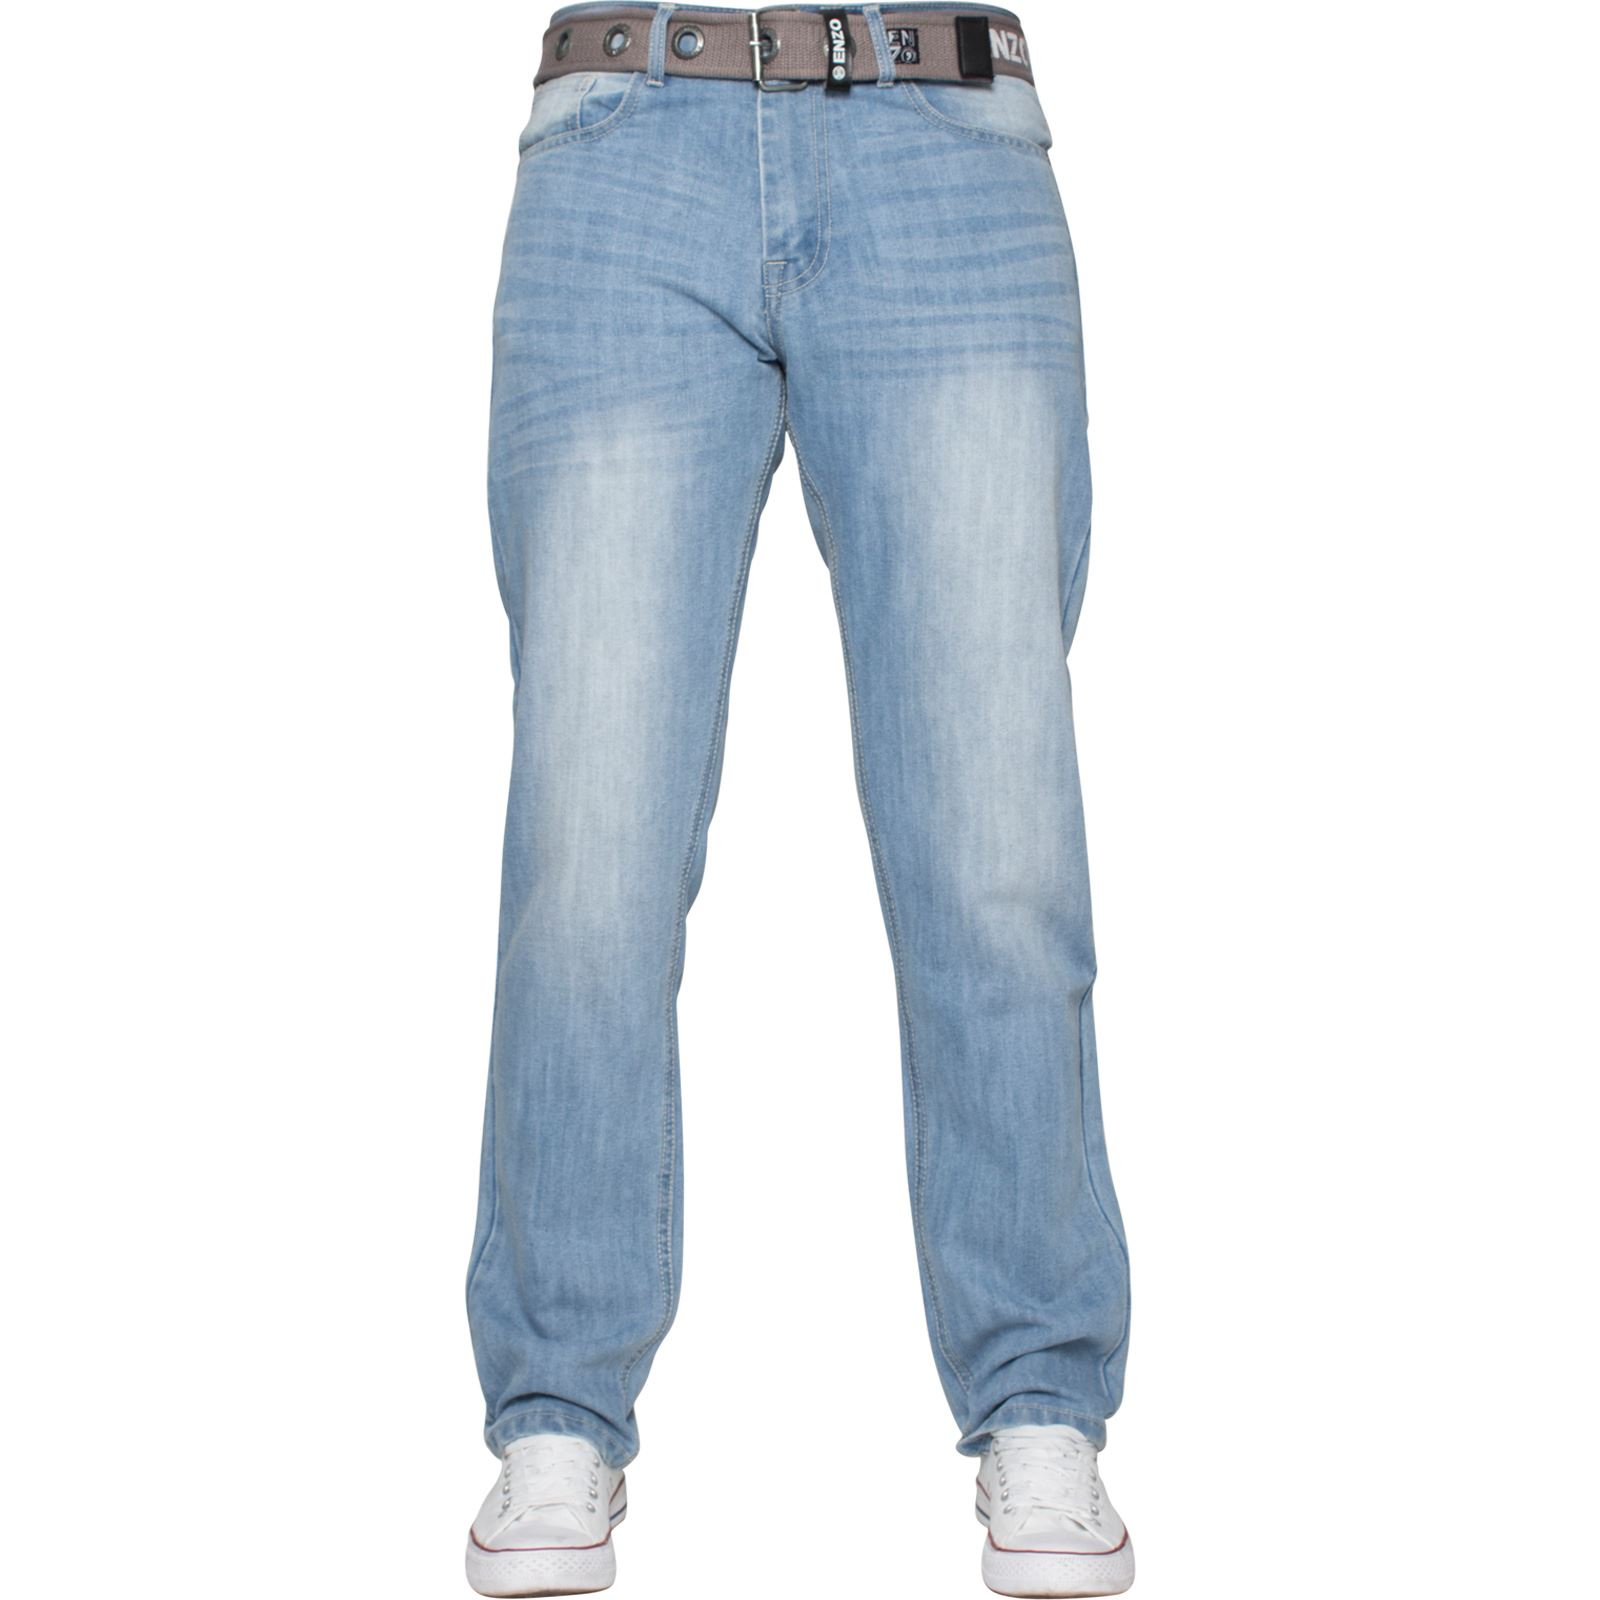 Enzo-Mens-Designer-Jeans-Regular-Fit-Denim-Pants-Big-Tall-All-Waist-Sizes thumbnail 17